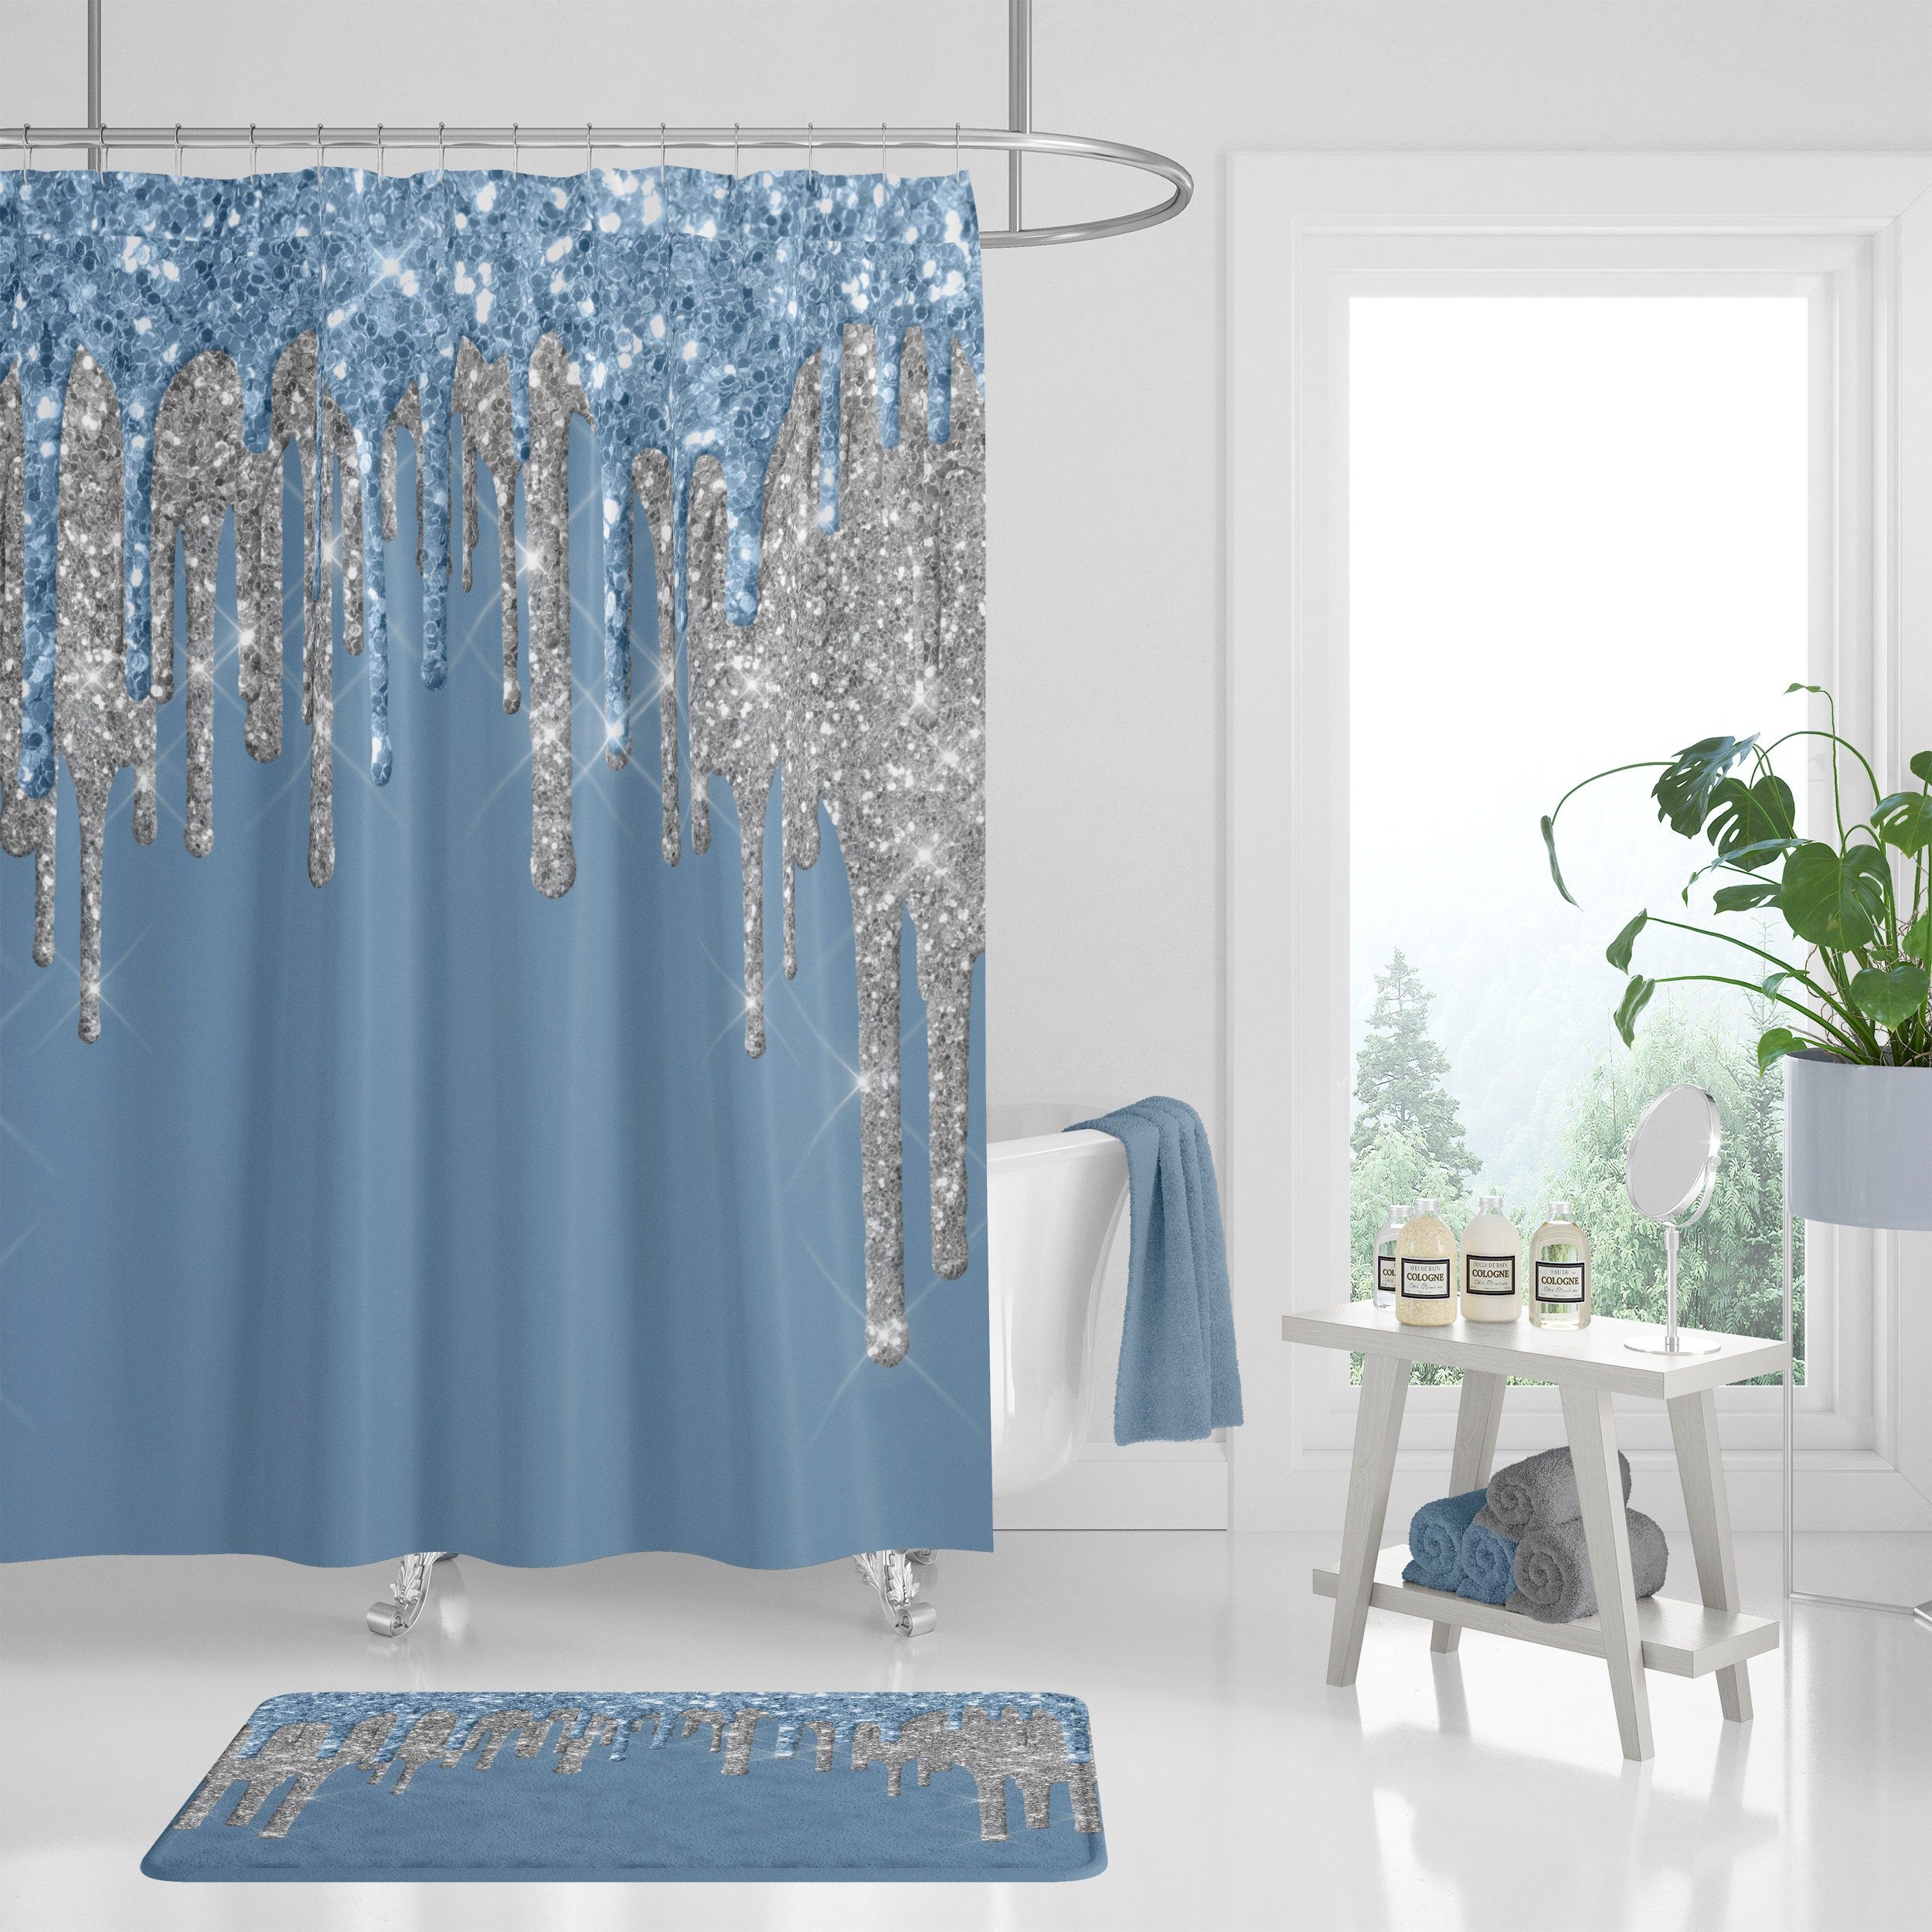 Shower Curtain Blue And Silver Bath Towels Mat Boho Bathroom Decor